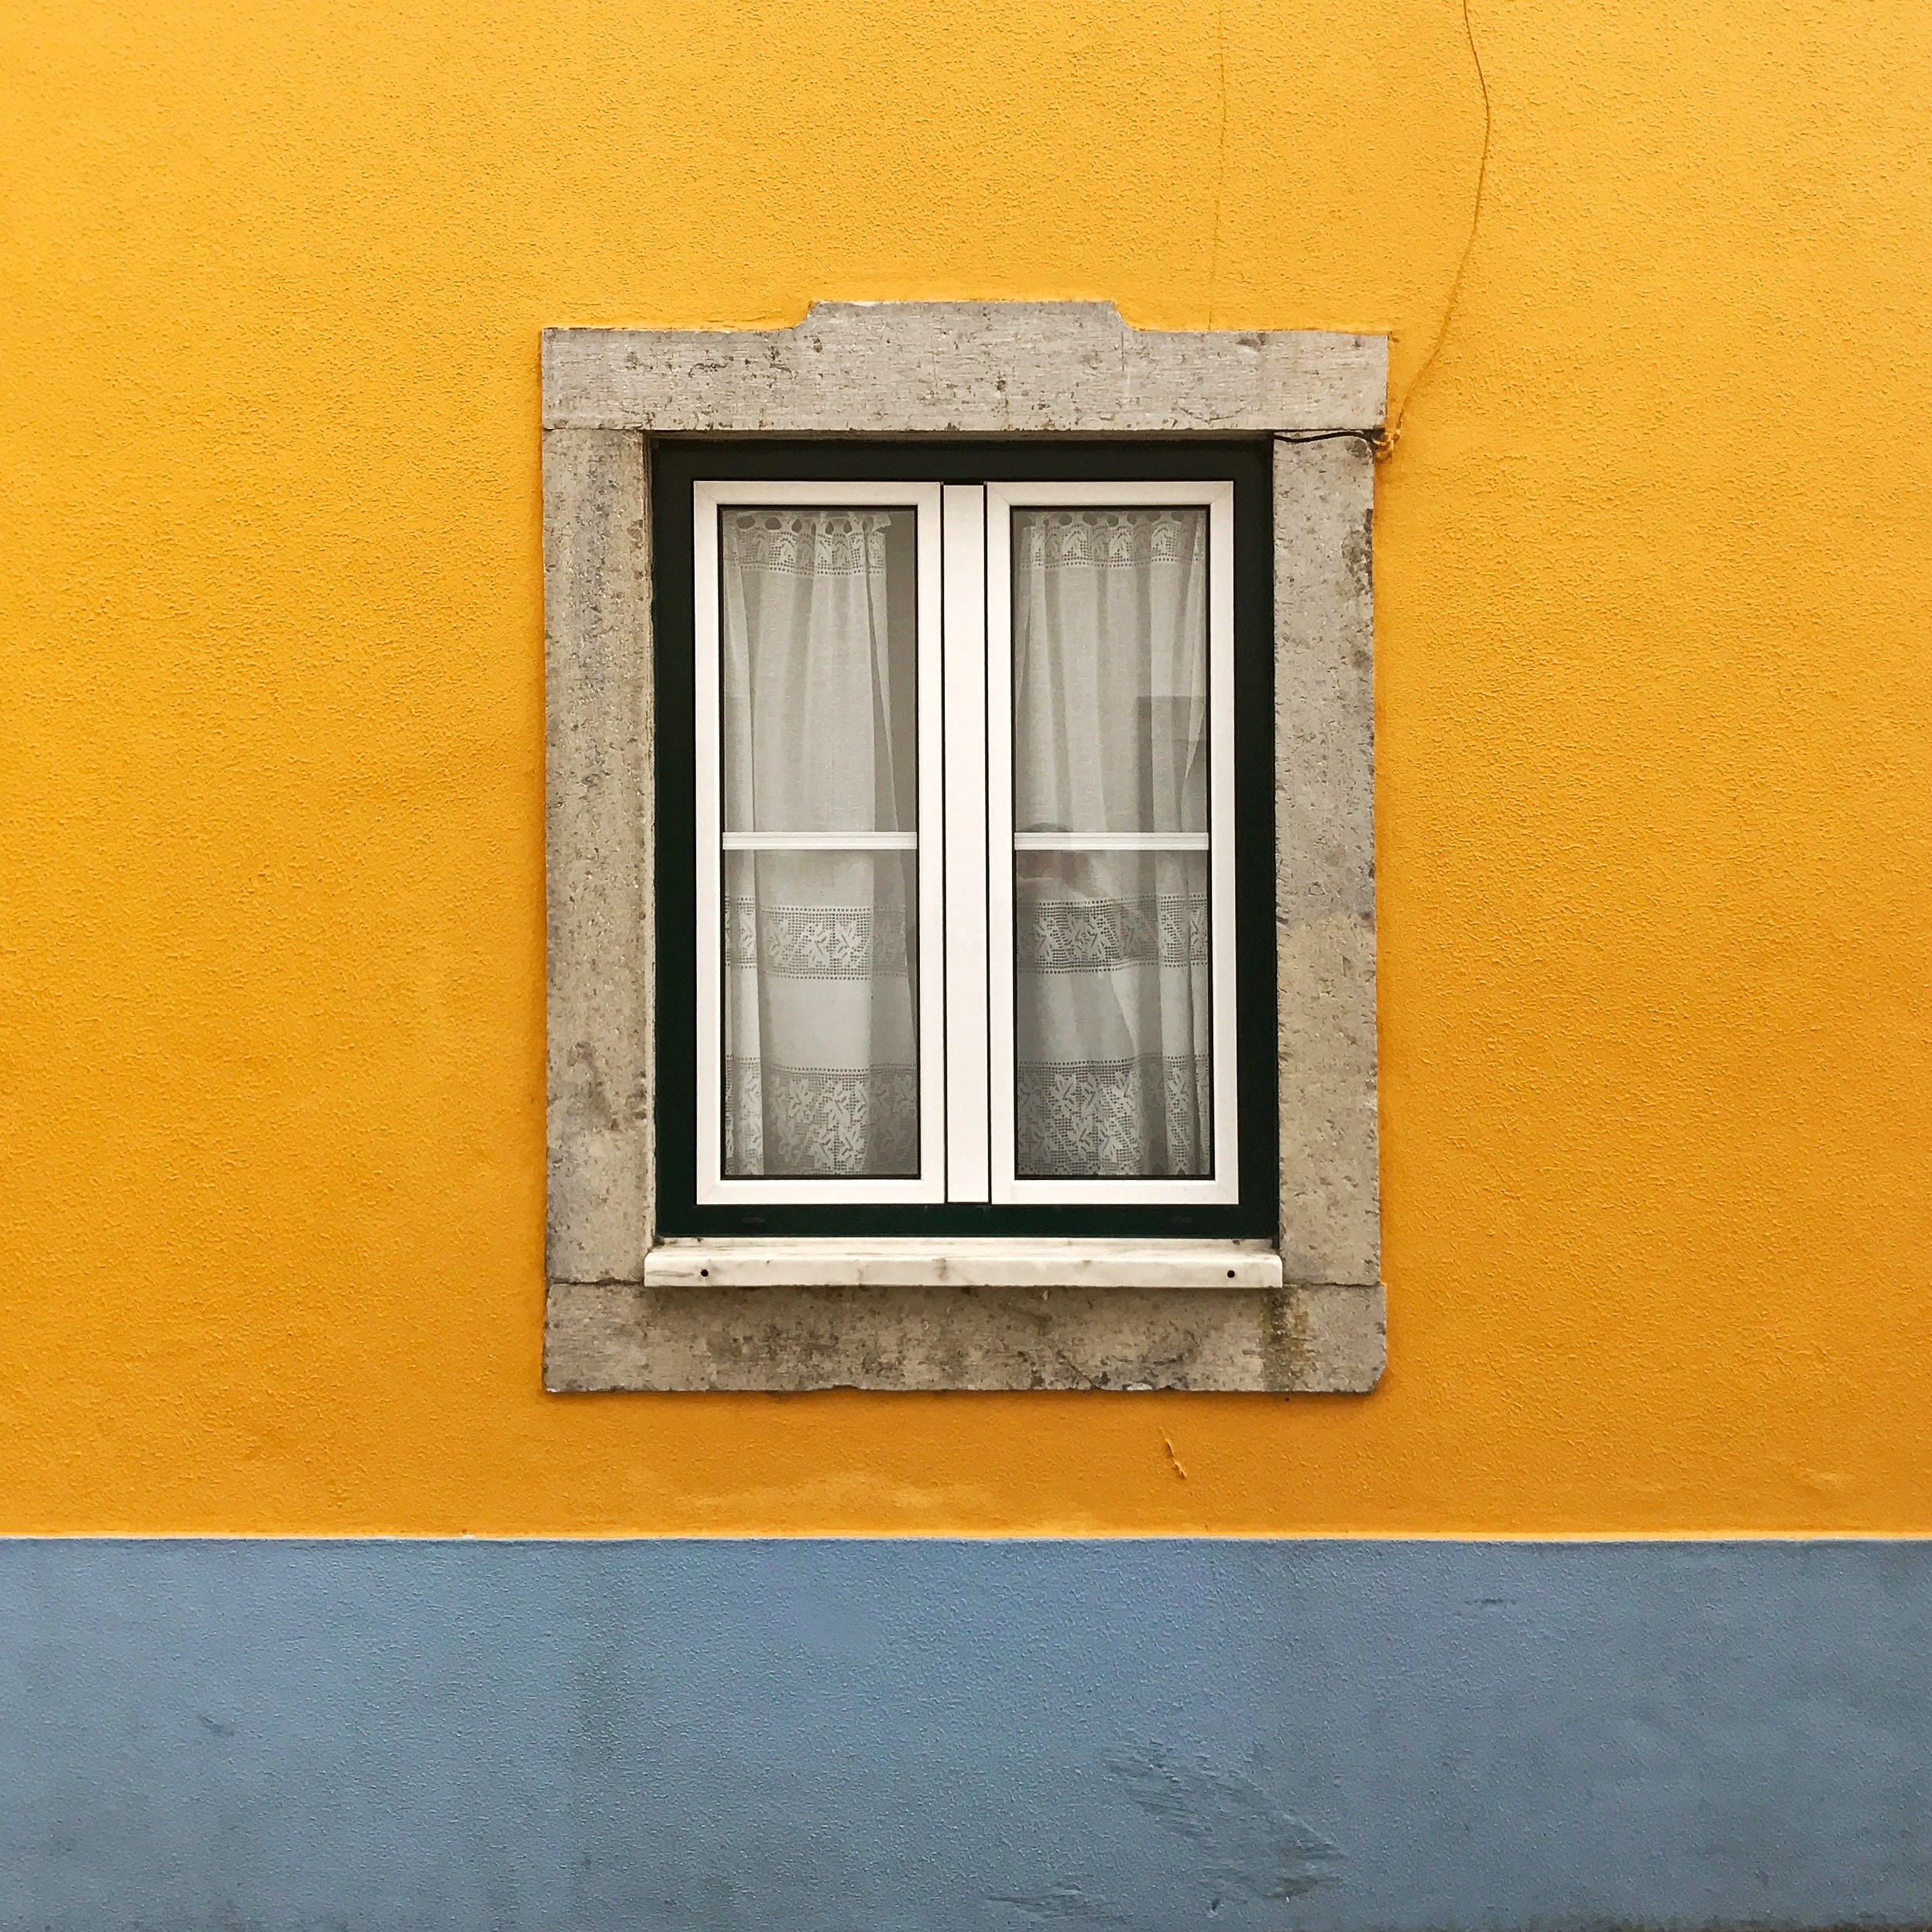 photo of white windowpane against yellow wall